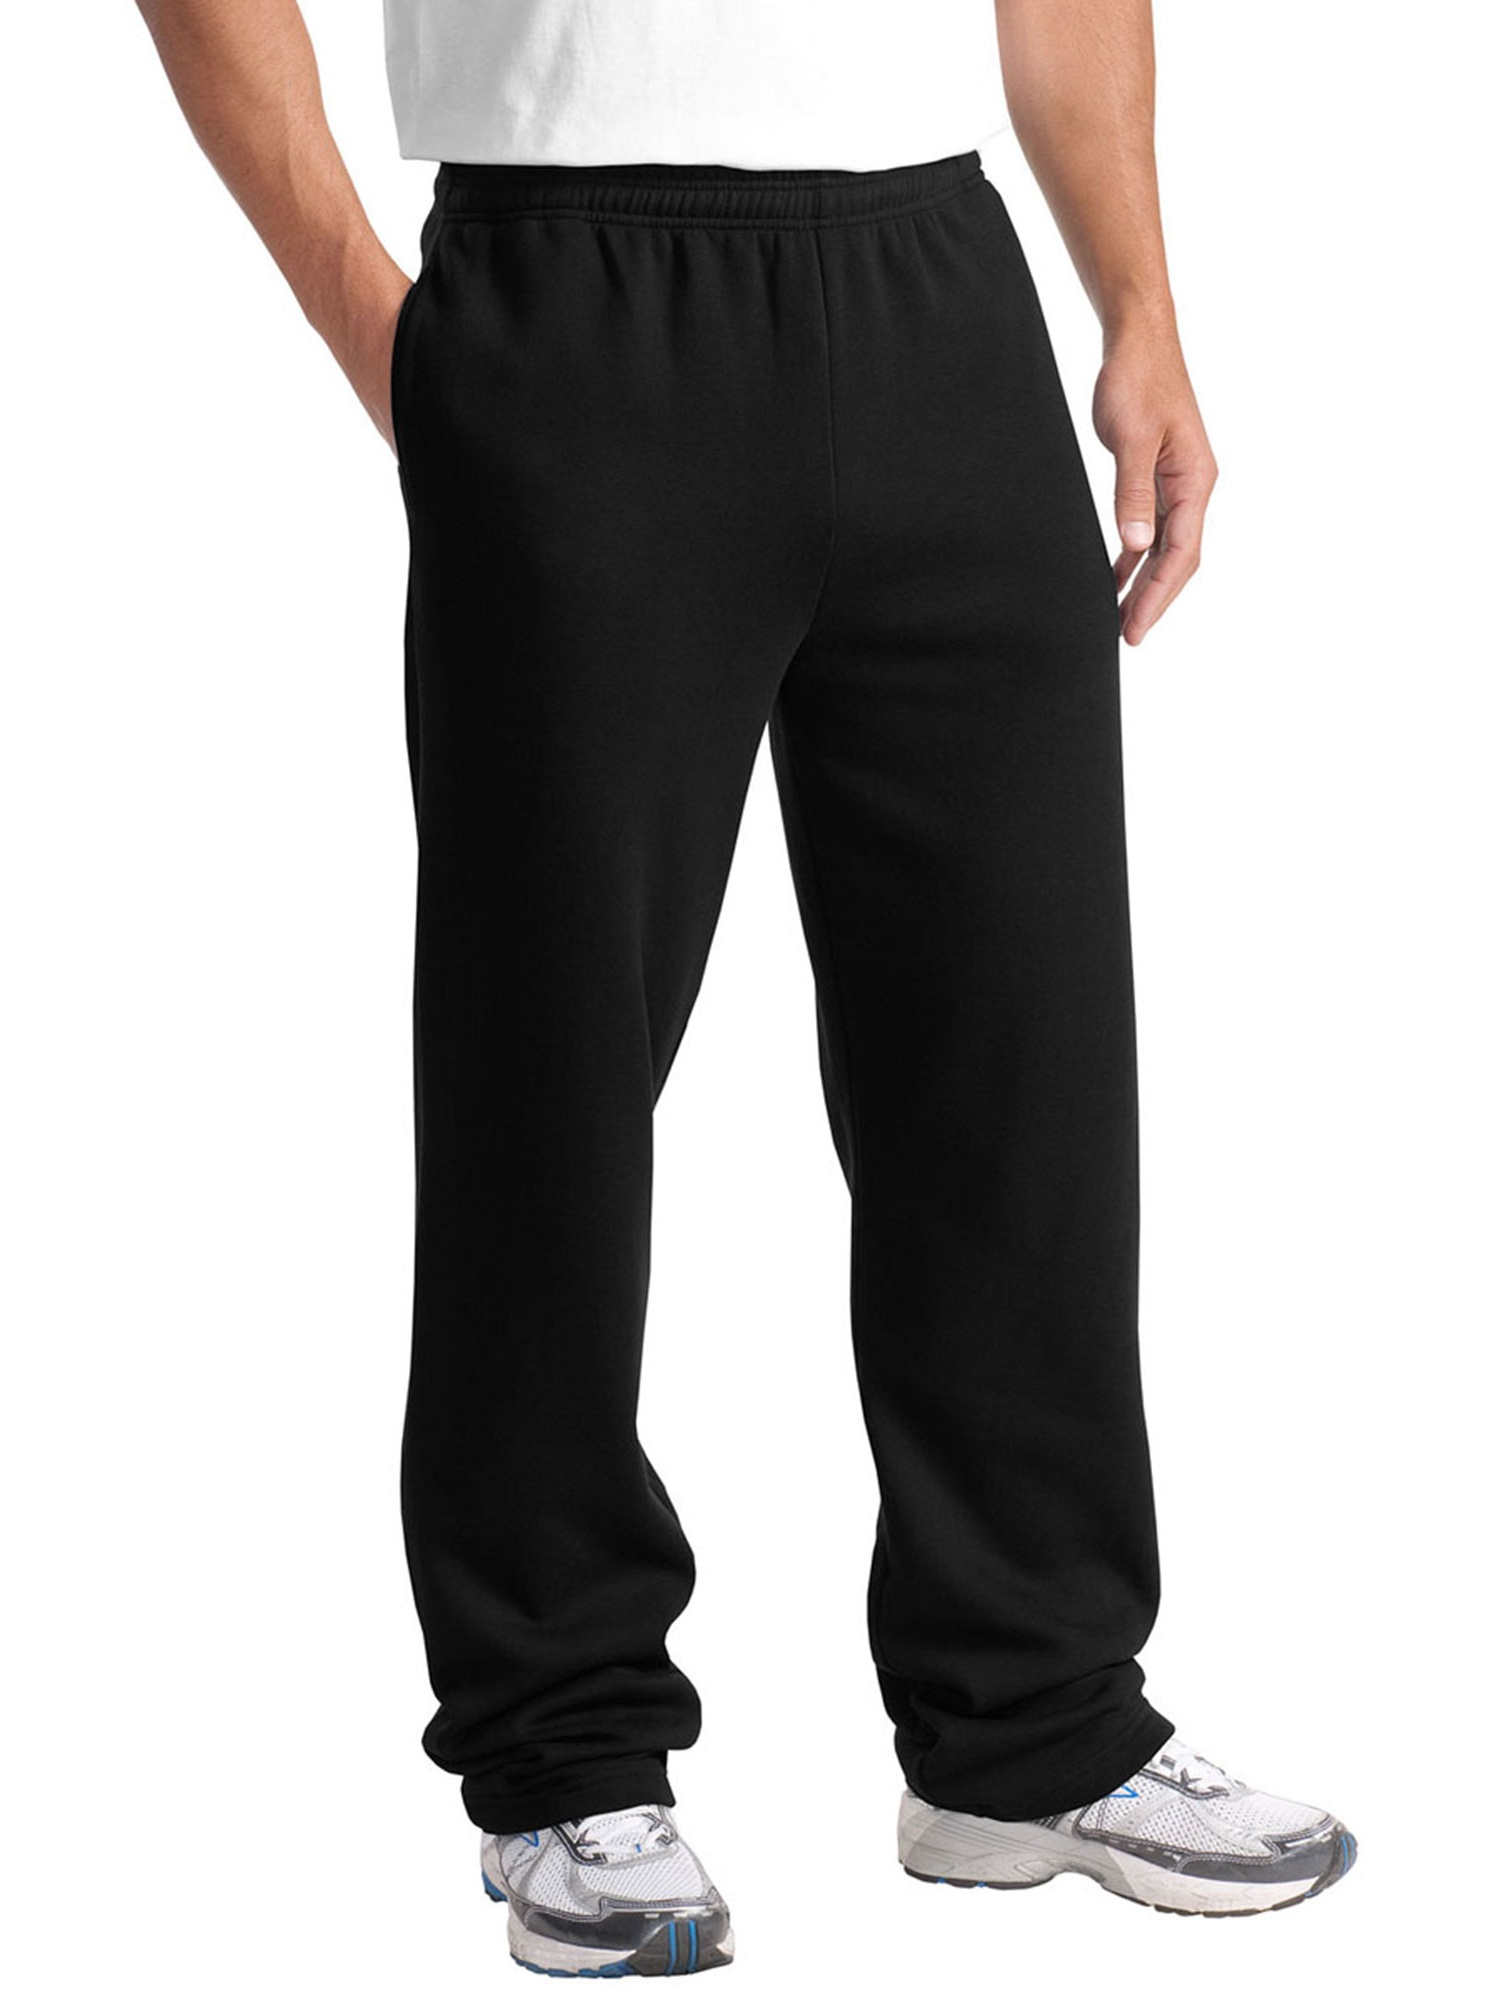 Sport-Tek Men's Comfort Waistband Open Bottom Sweatpant